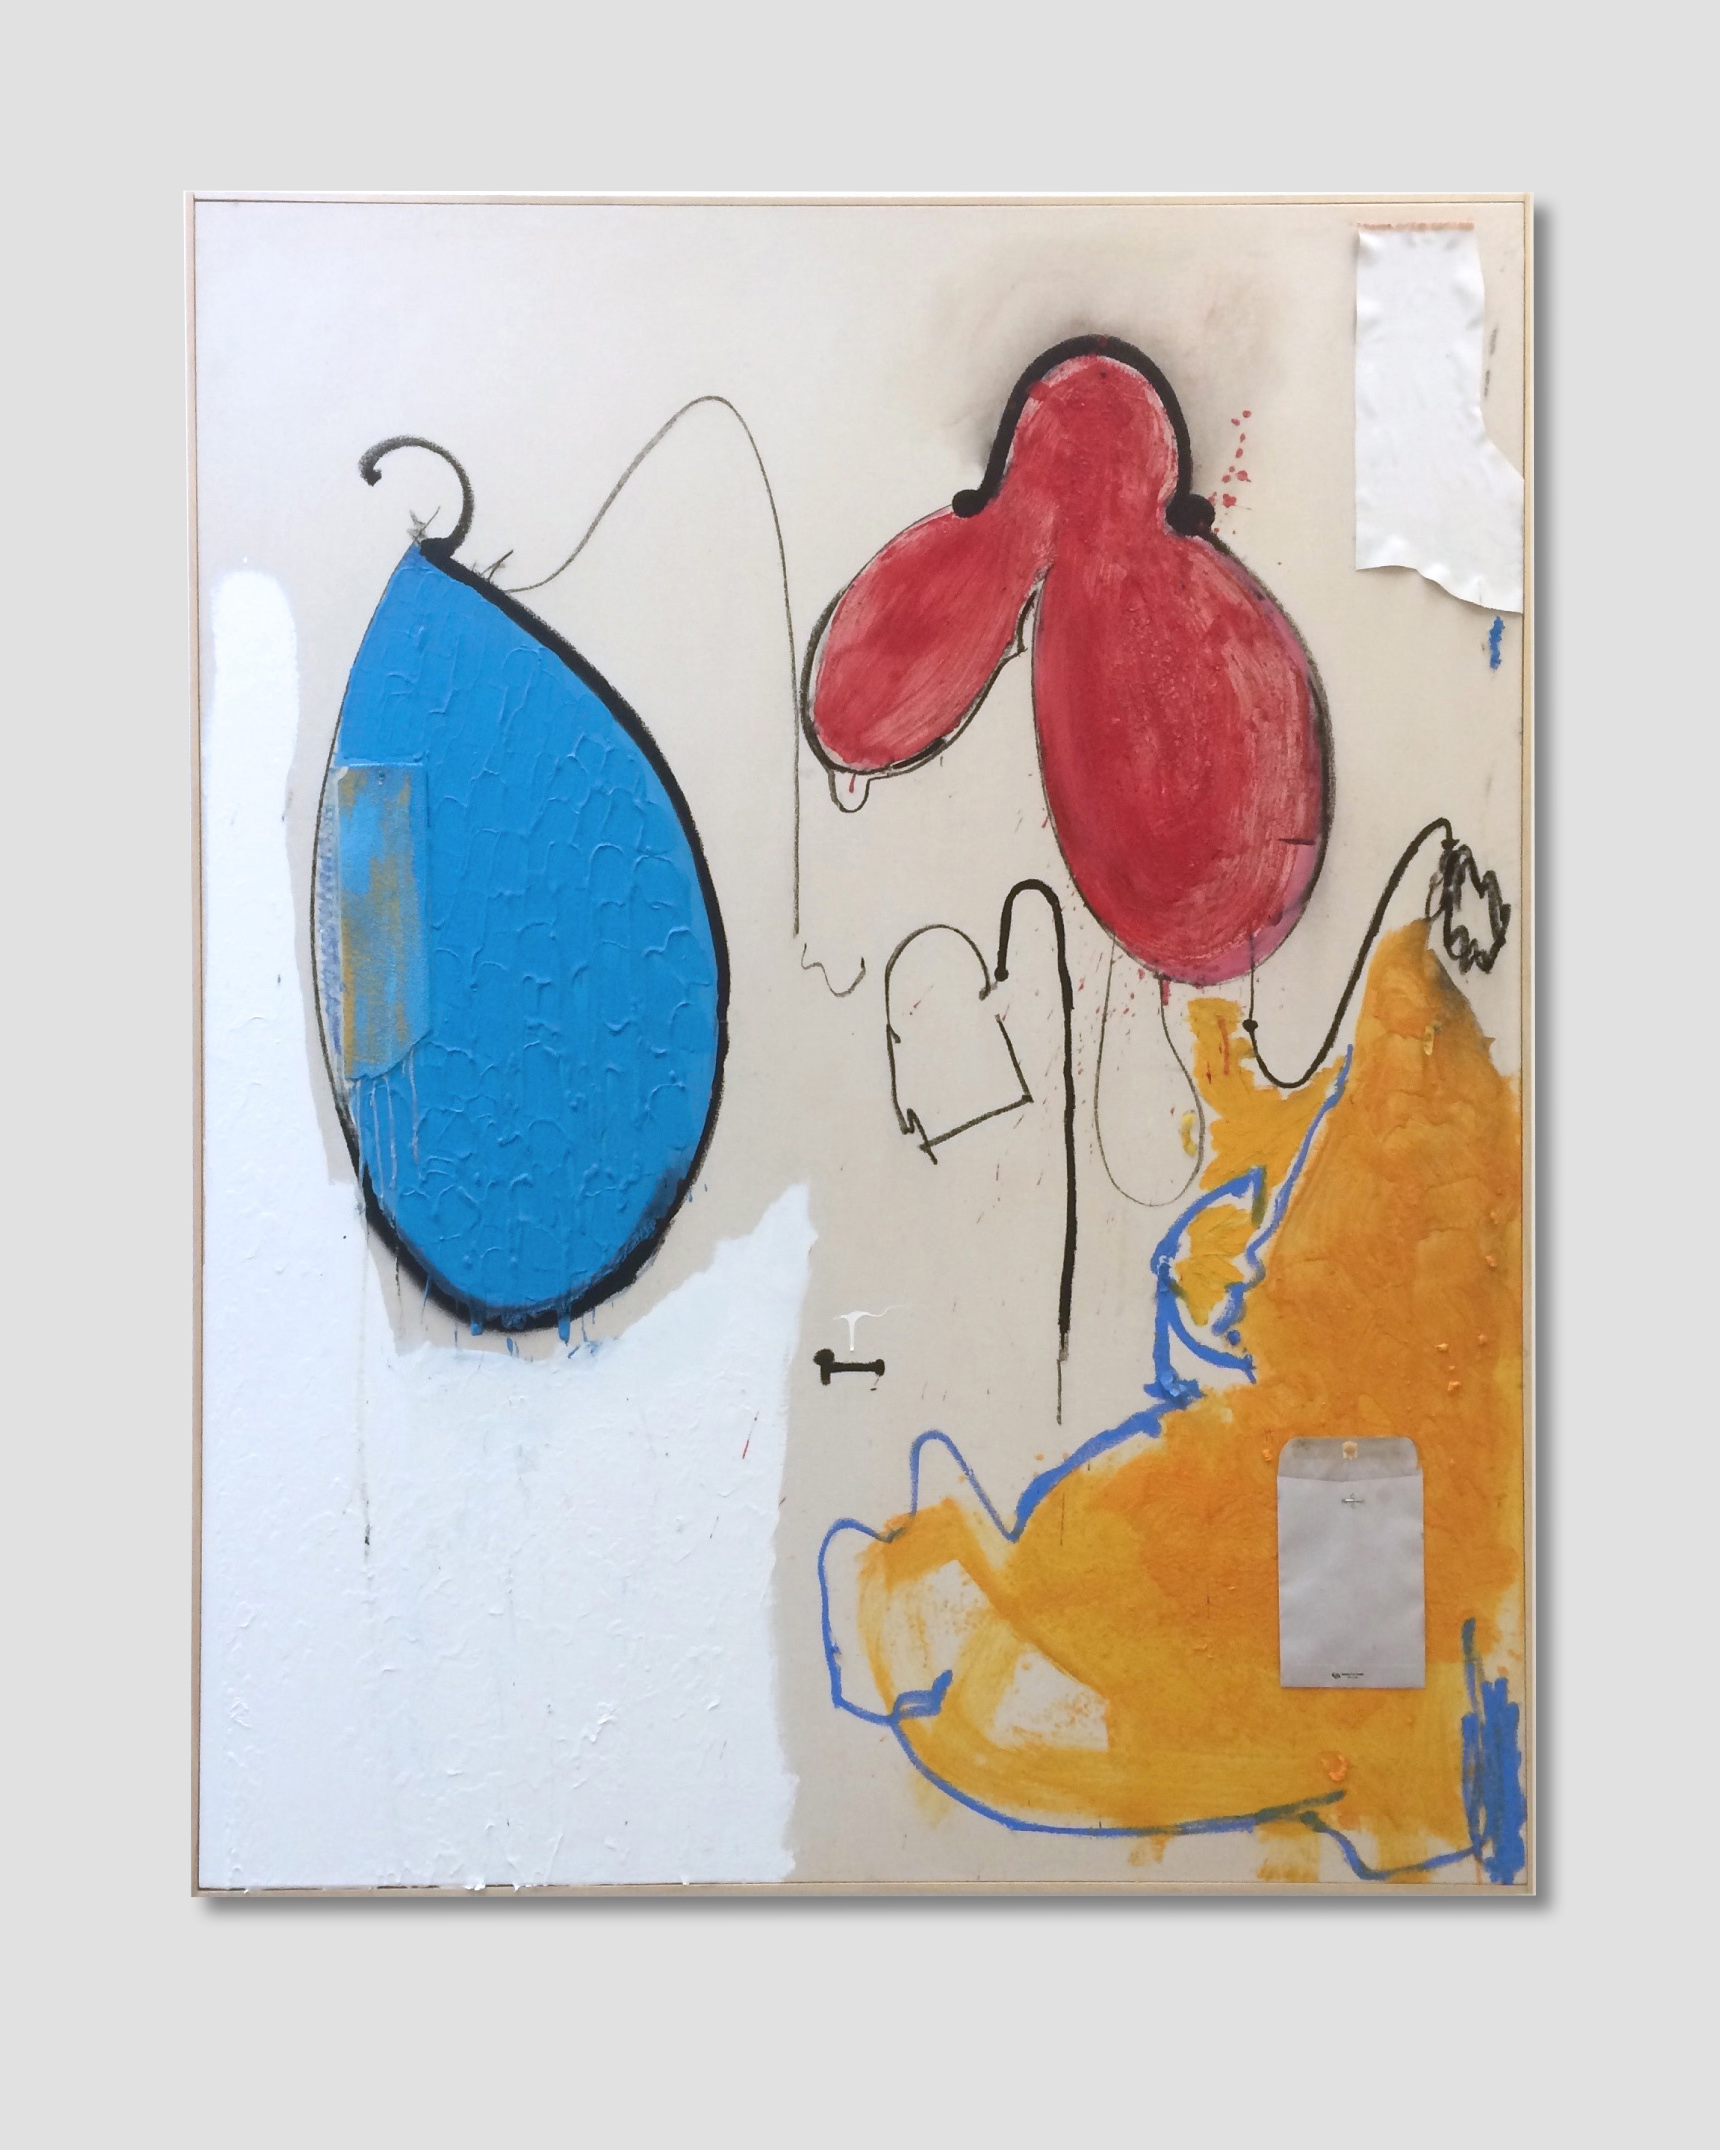 Untitled,  Oil, enamel, acrylic, spray paint, nailed thermoplastic and collaged paper on canvas  74.8 in x 59 in, (190 cm x 150 cm)